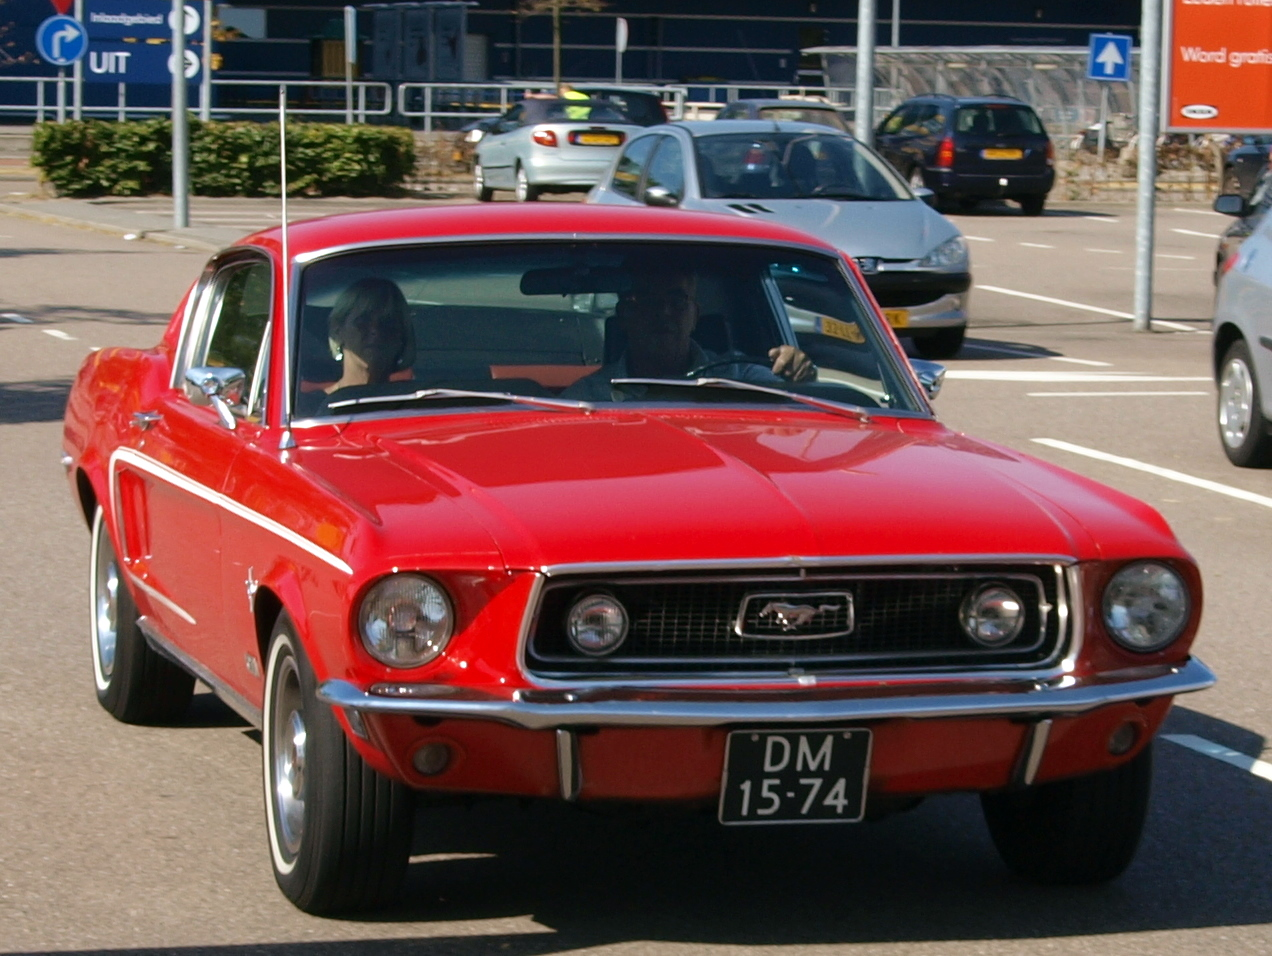 File Ford Mustang Fastback 2 2 Dm 15 74 Pic2 Jpg